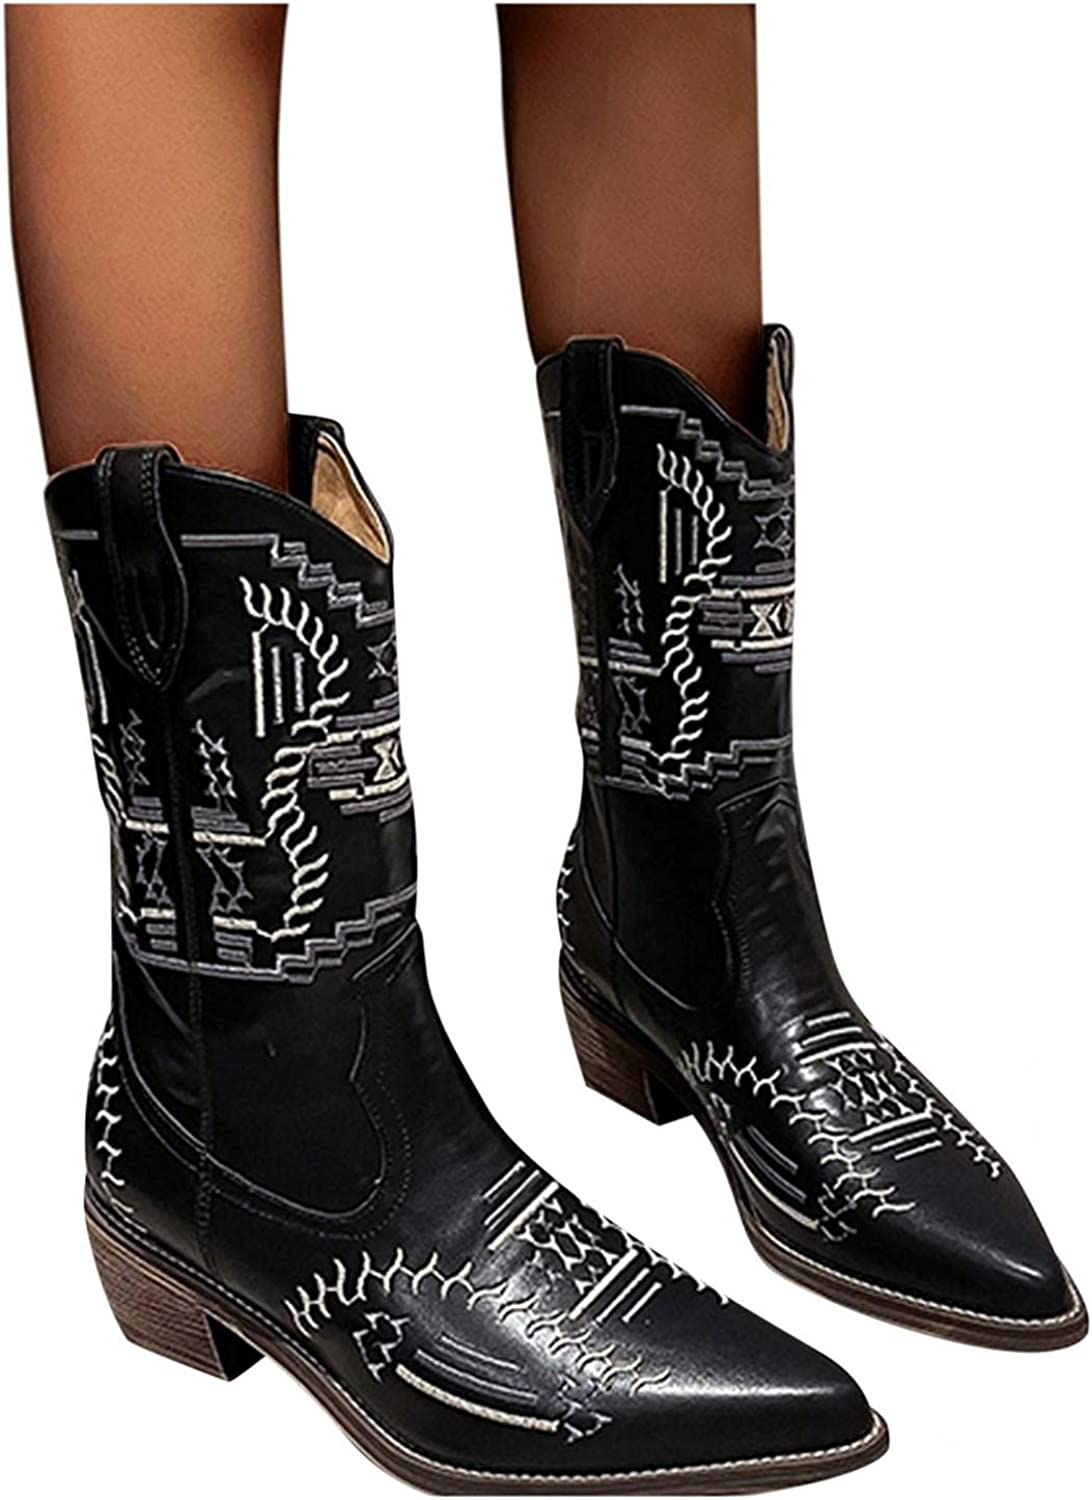 Niceast Cowboy Boots for Women Point Toe Mid Calf Boots Retro Comfortable Winter Fashion Boots Square Heels Riding Boots